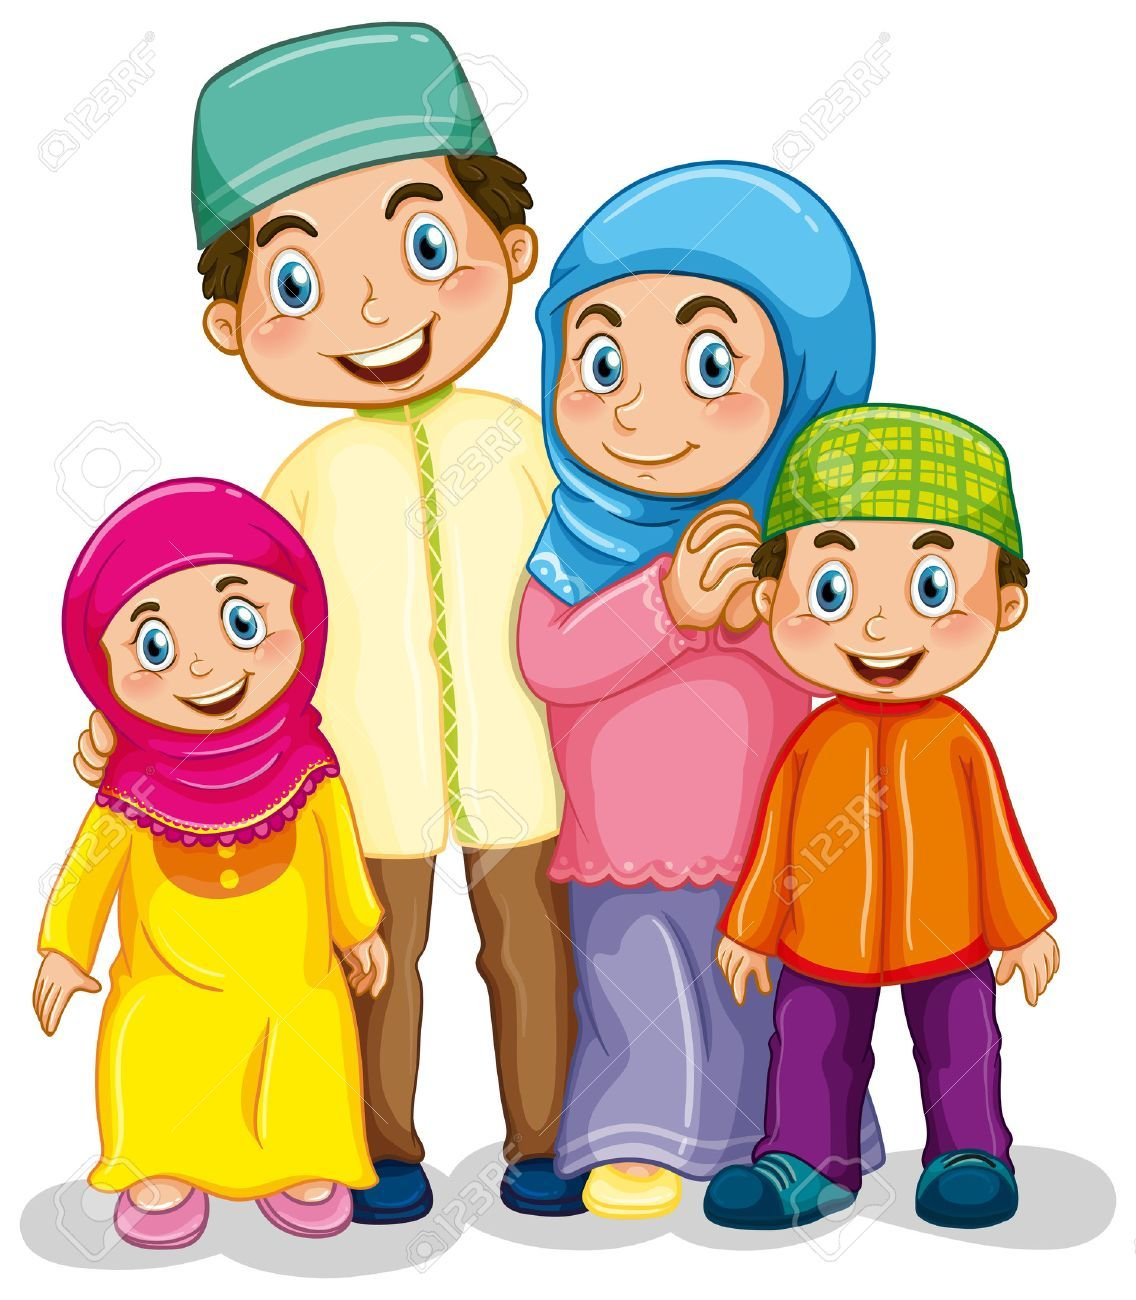 Family traditions clipart clipart freeuse Family traditions clipart 7 » Clipart Portal clipart freeuse